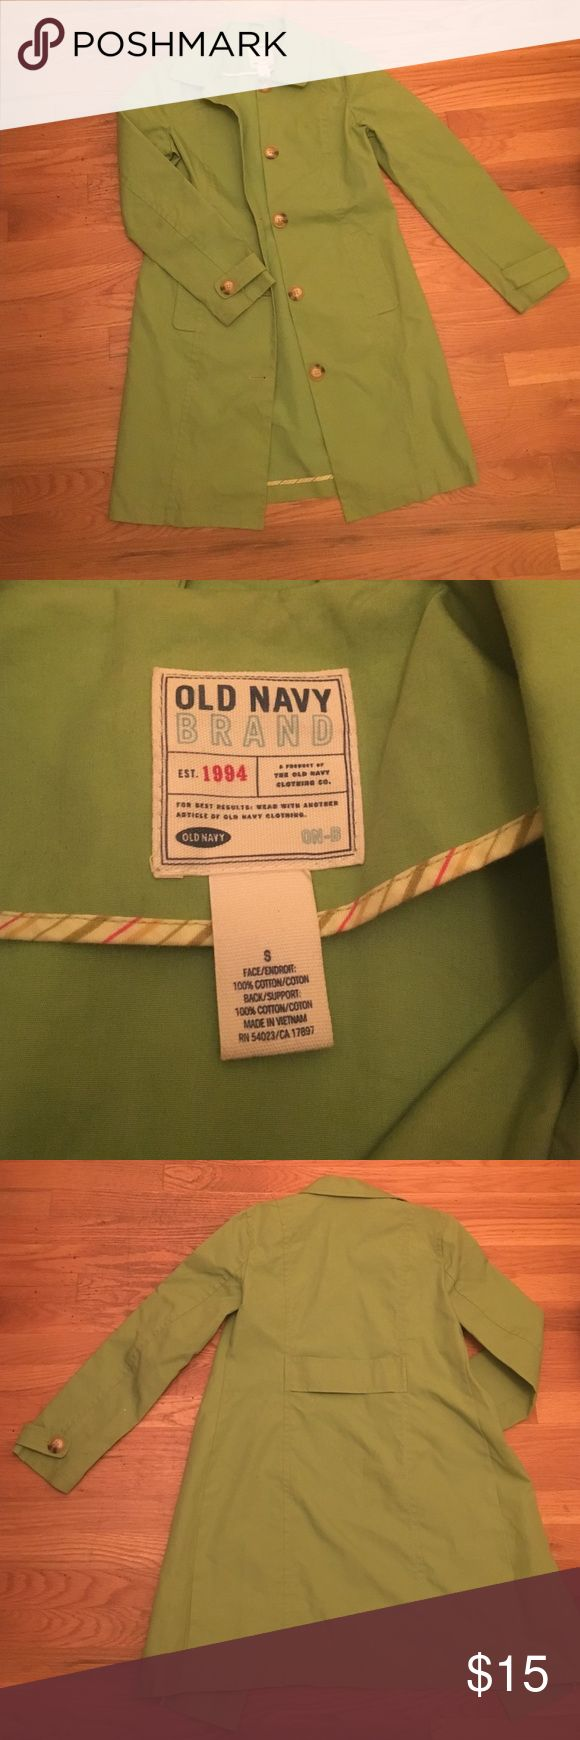 """cheery """"Old Navy"""" green trench coat worn once, very cute, great statement piece! Old Navy Jackets & Coats Trench Coats"""